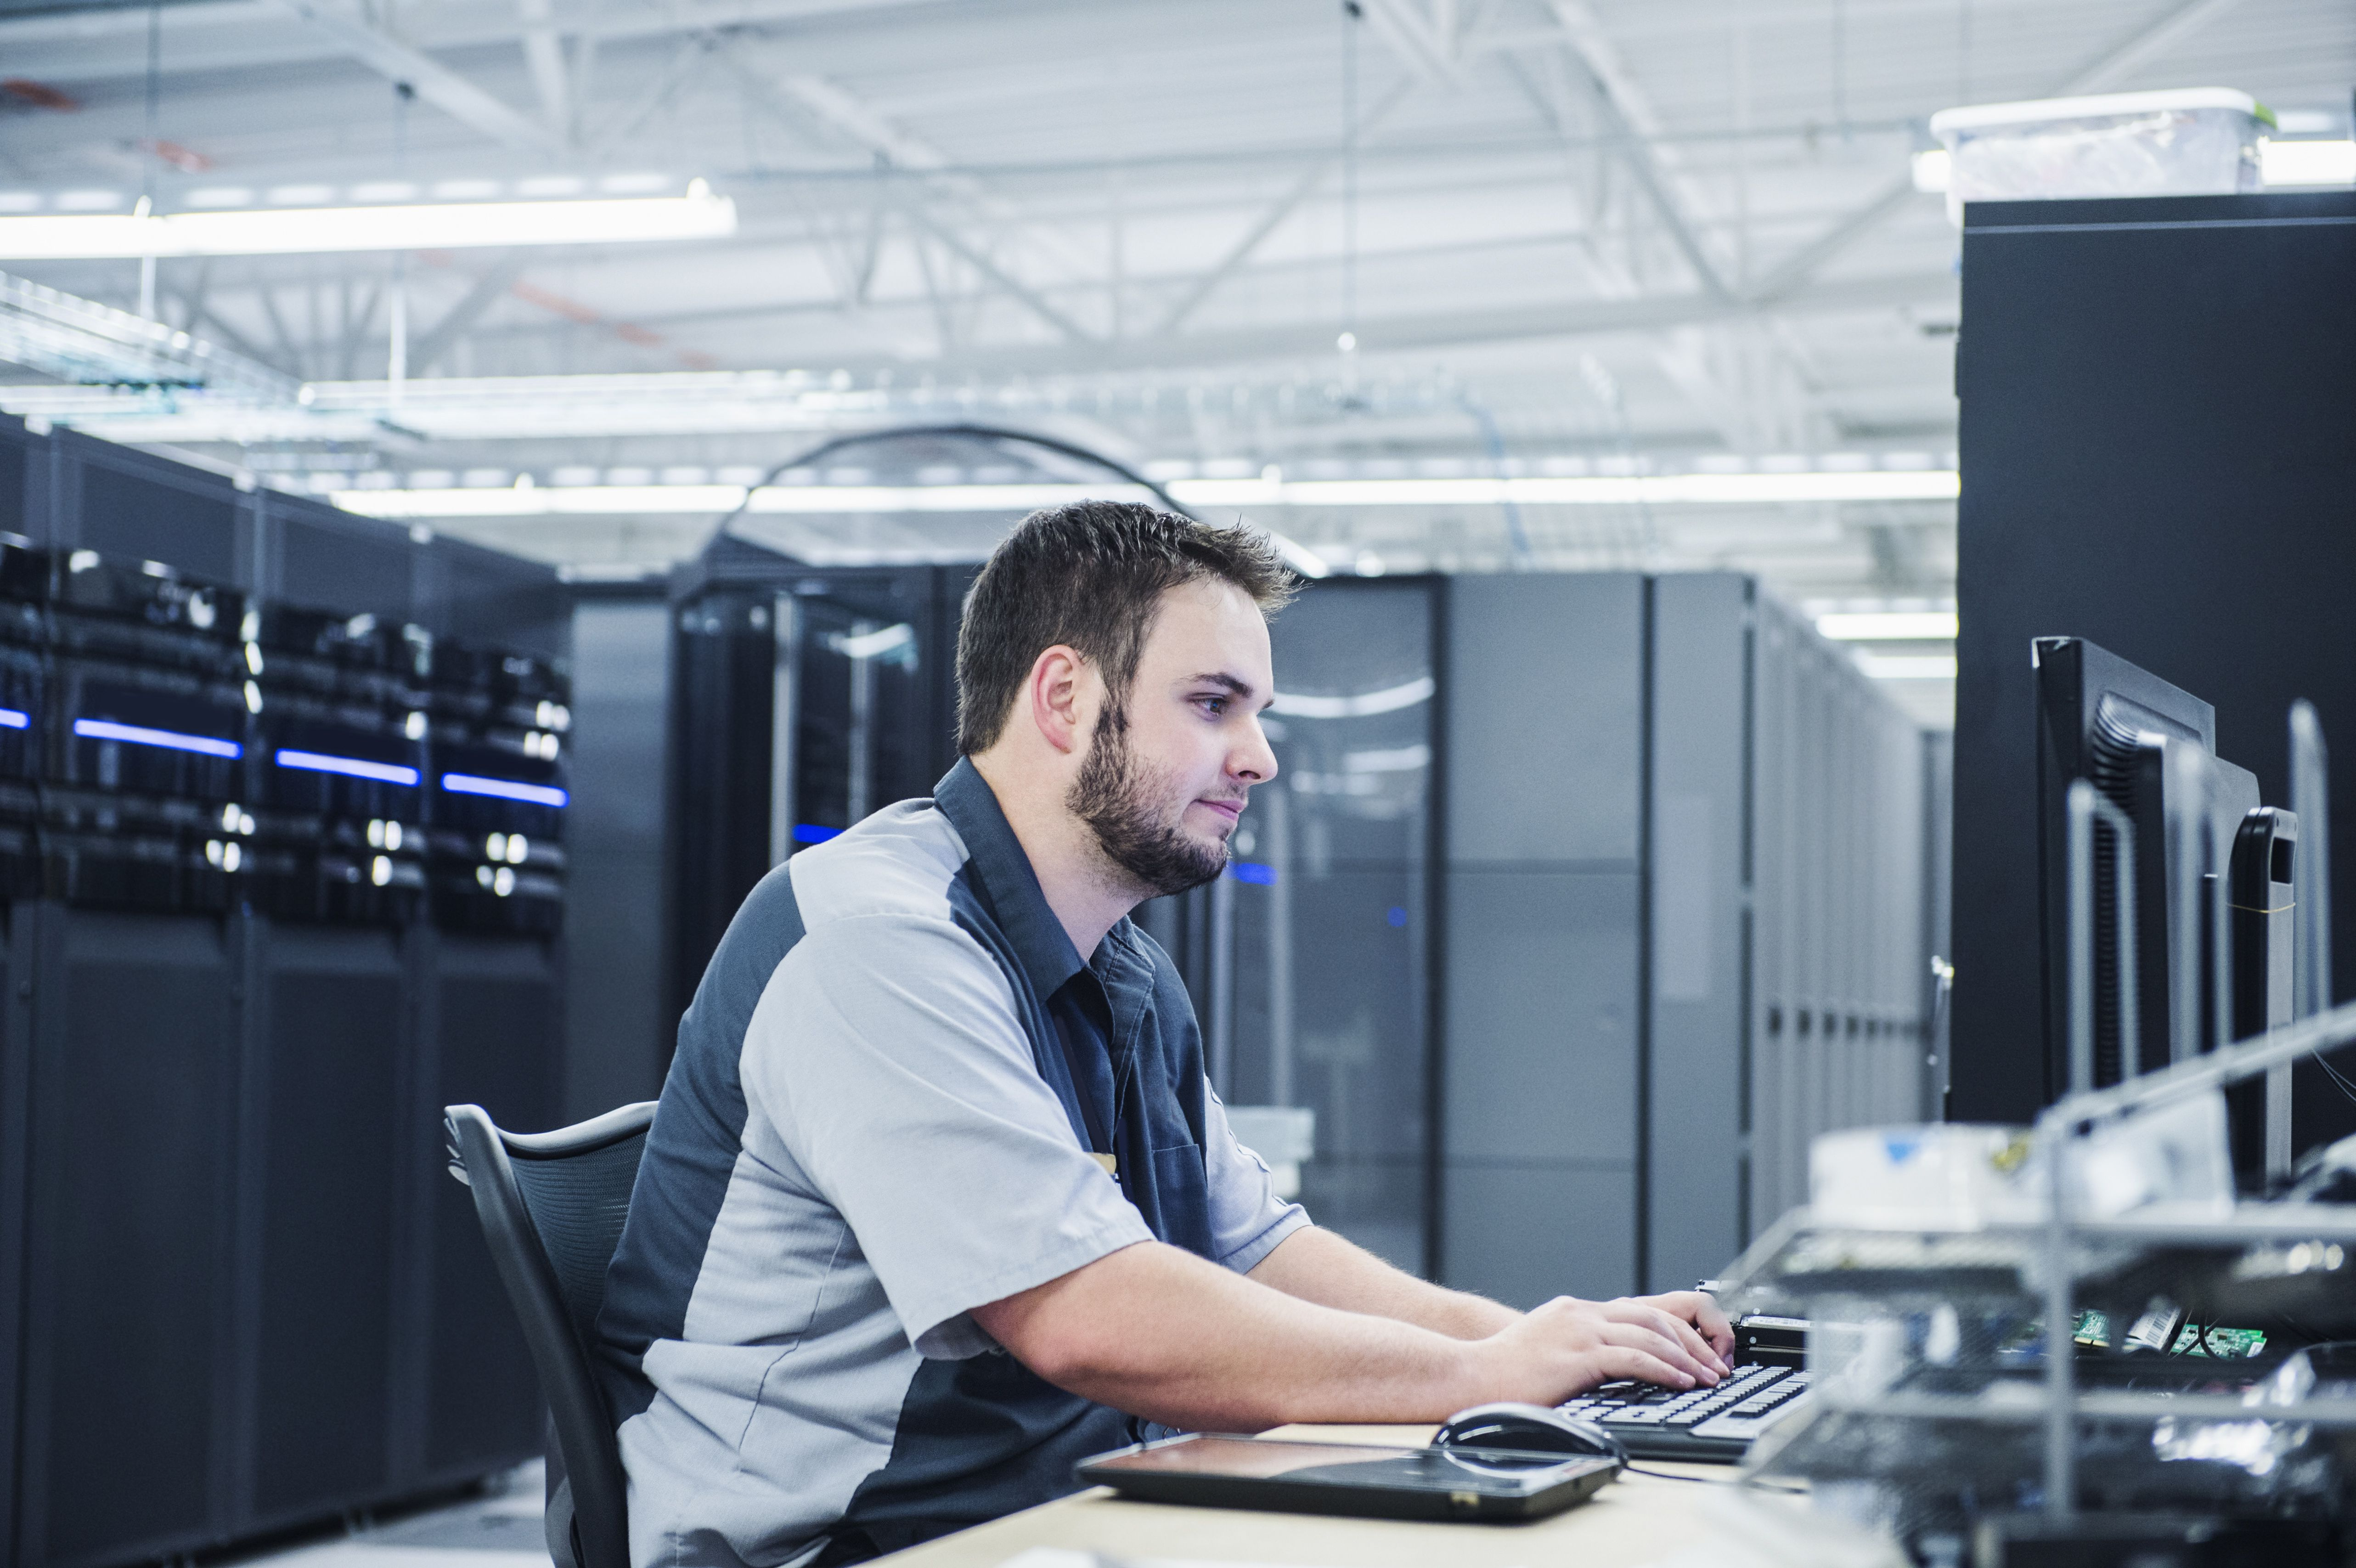 Network Administrator Job Description And Facts